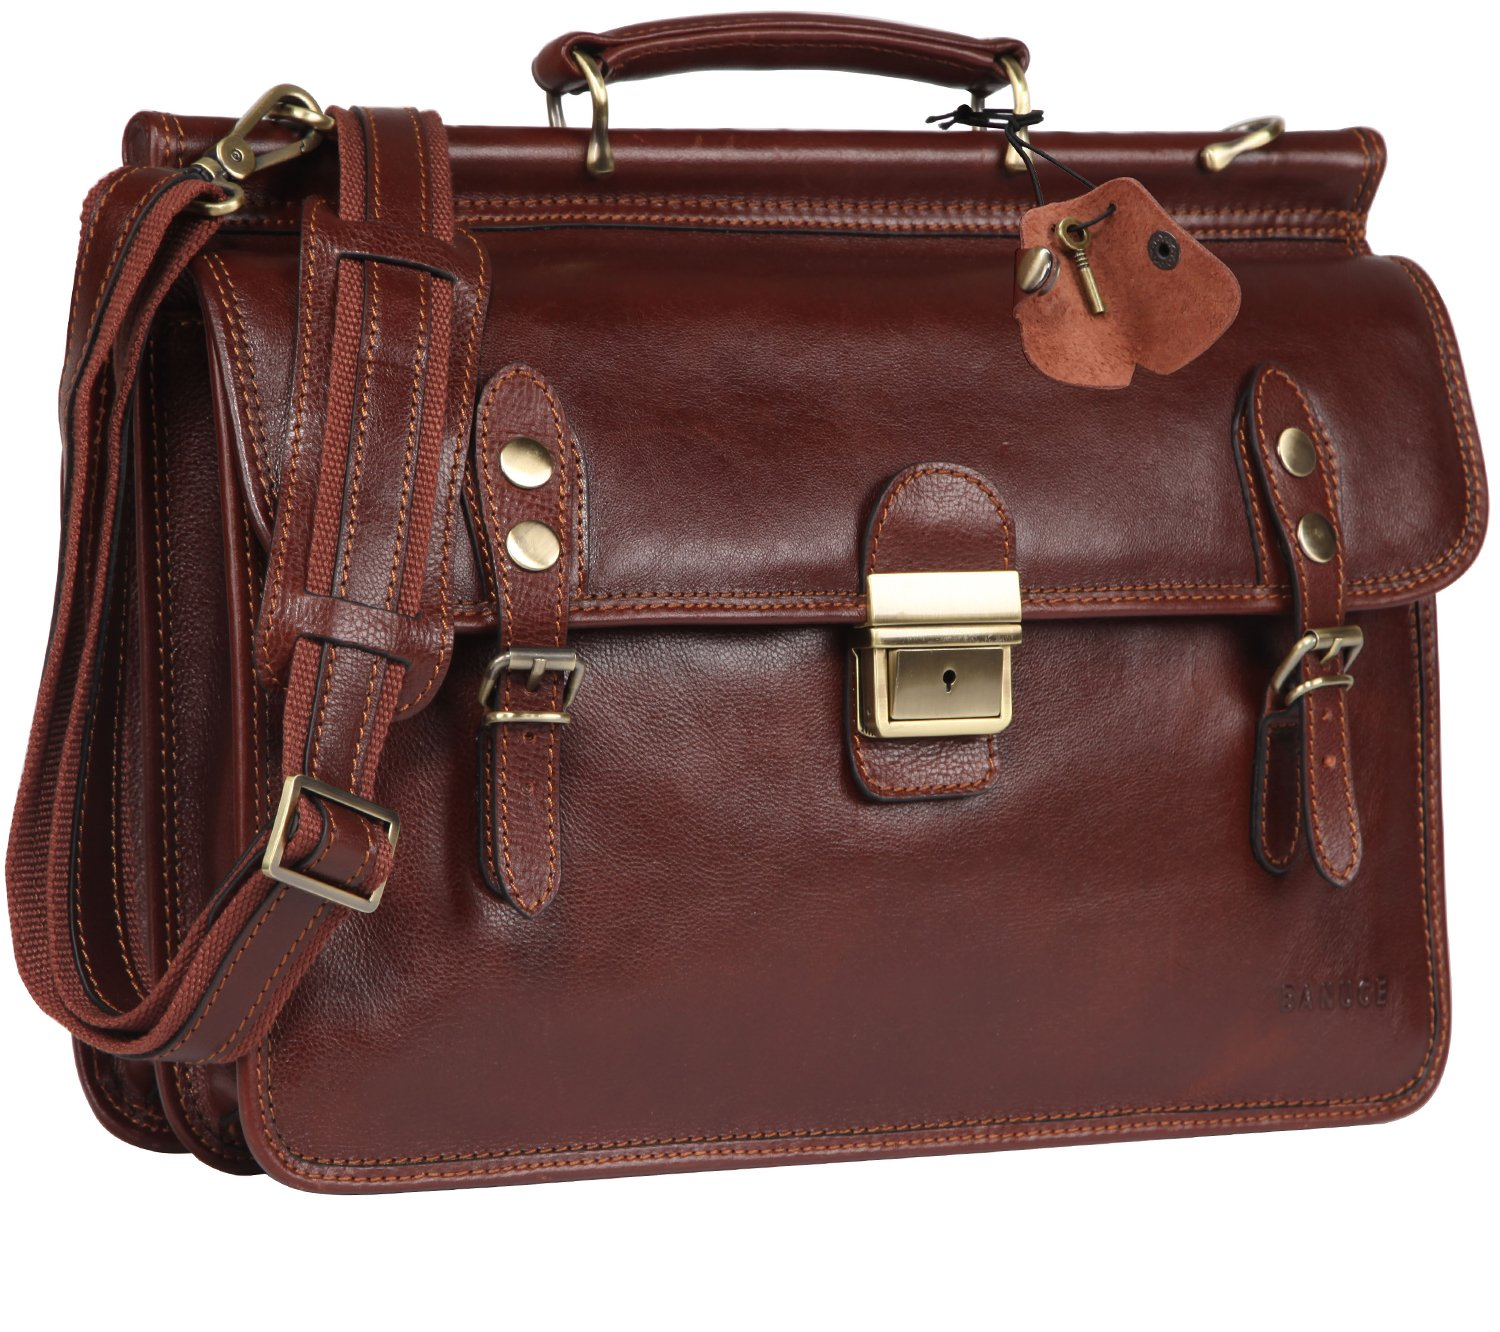 Banuce Mens Italian Leather Flapover Briefcase Tote 2way Business Laptop Messenger Bag Attache Case by Banuce